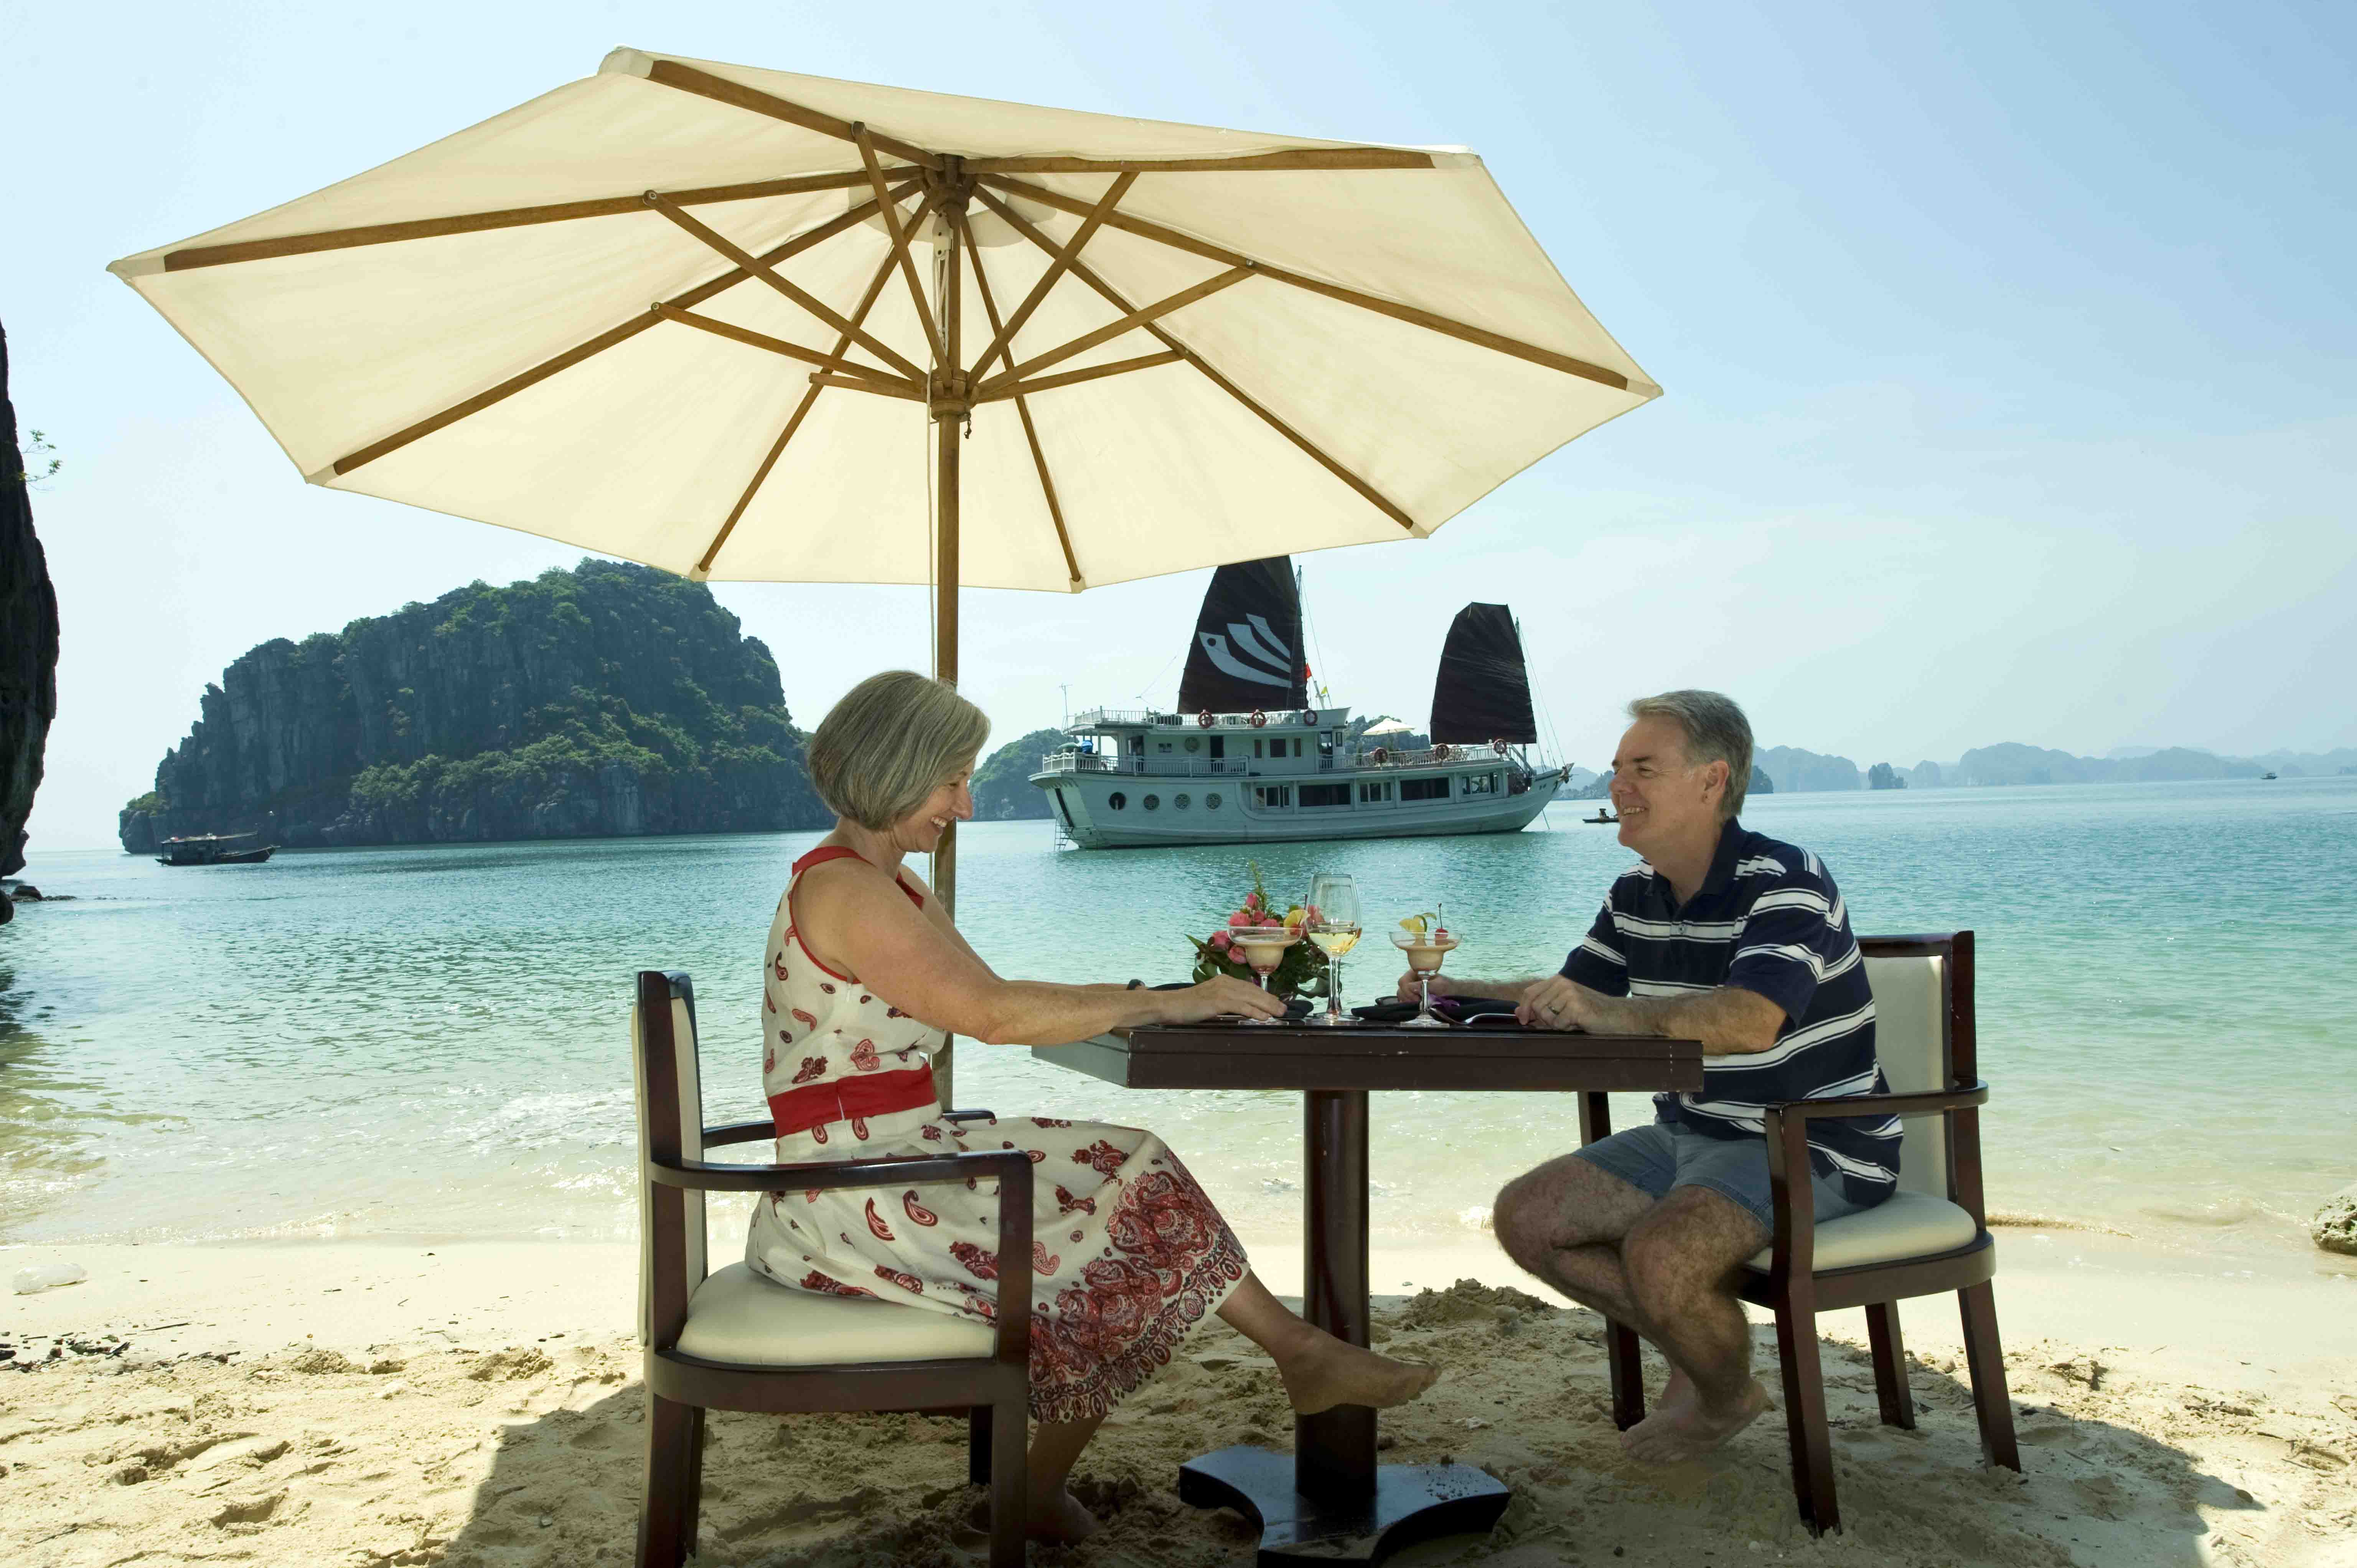 Lunch on the beach for honeymooners in Halong Bay